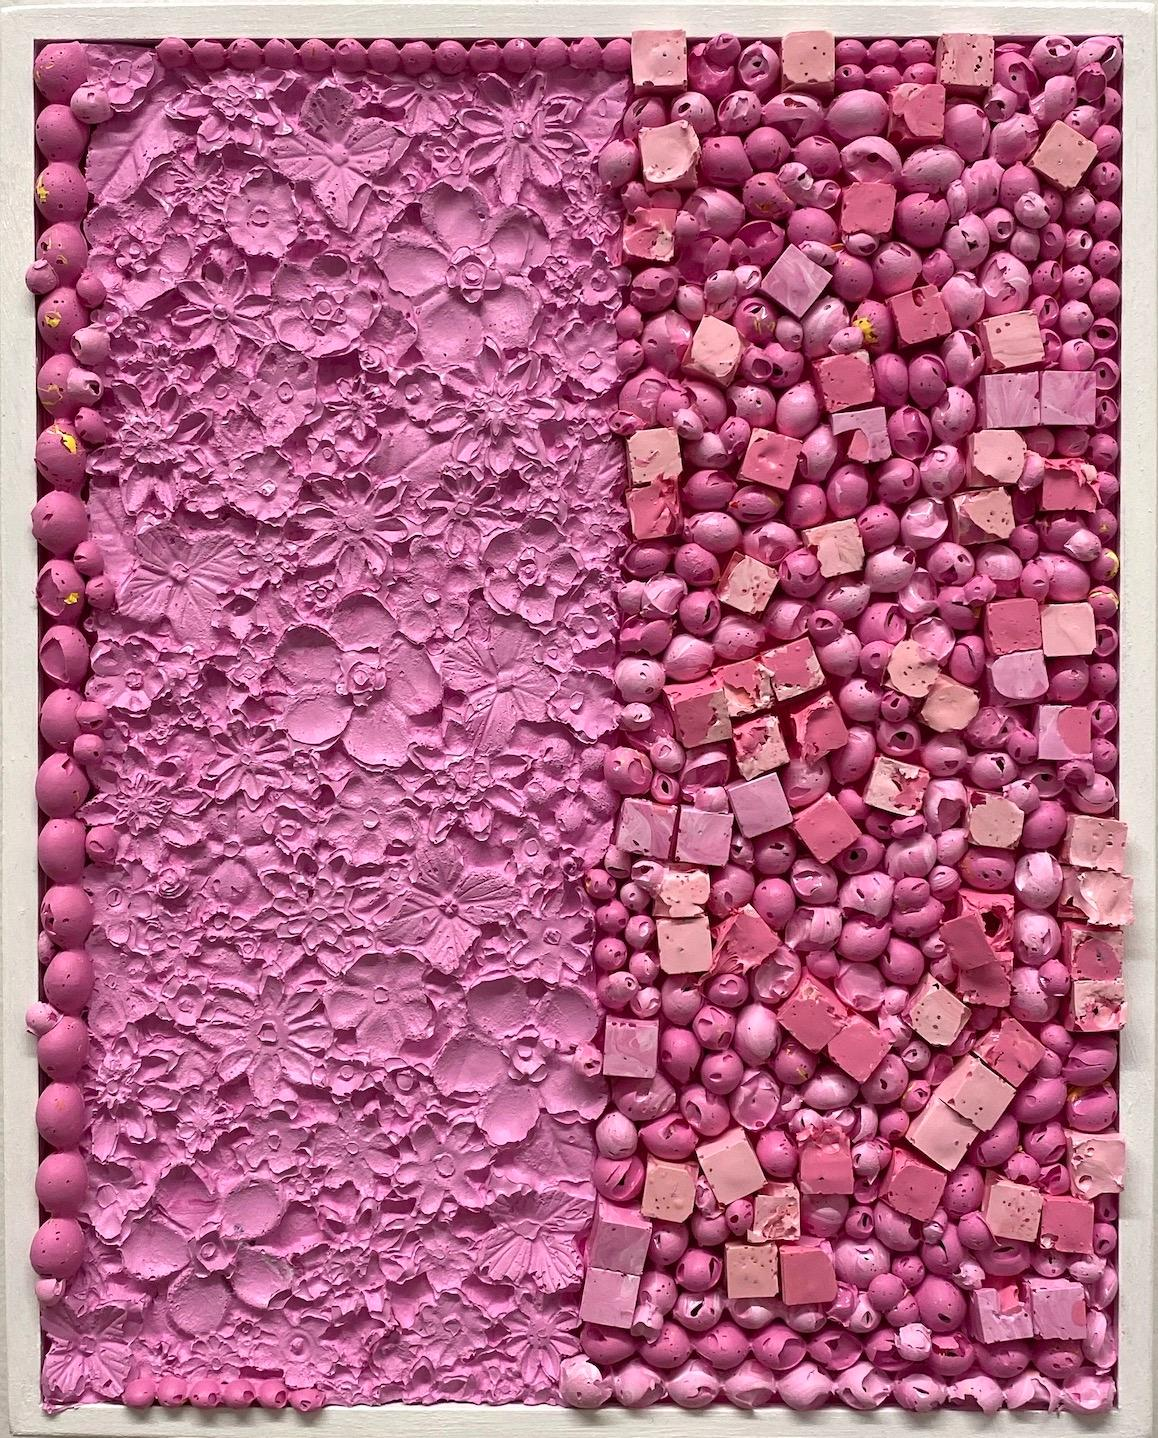 Pink Tapestry - Pink, Textured Contemporary Painting on Panel, Floral